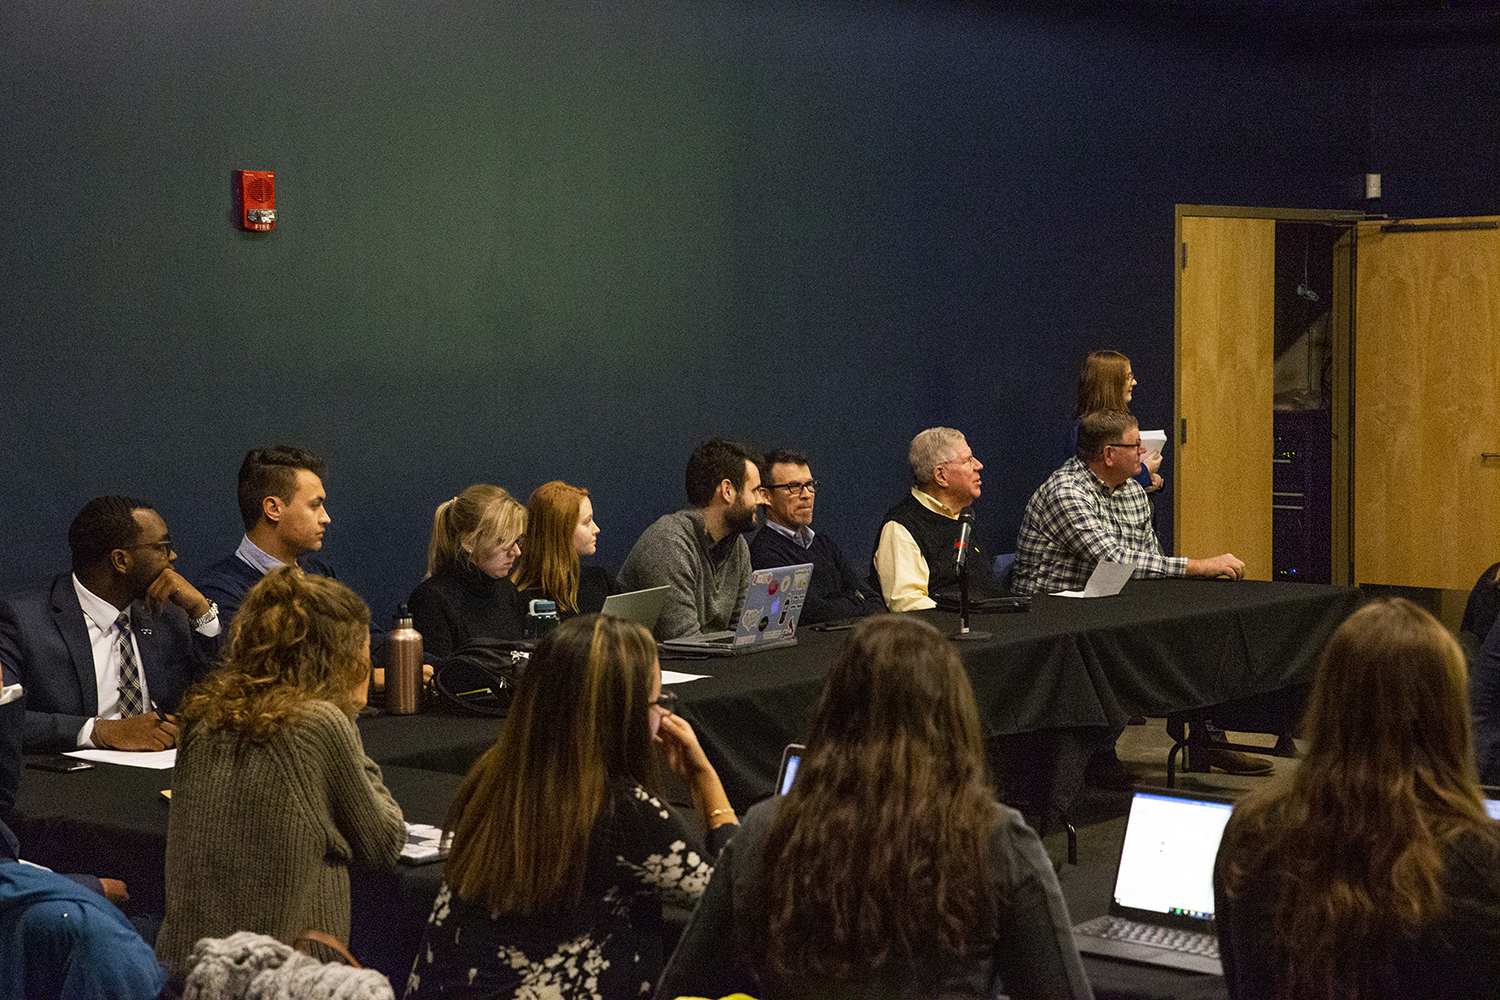 Panelists discuss issues during the UISG completion grant meeting at the IMU on Tuesday, November 27, 2018.